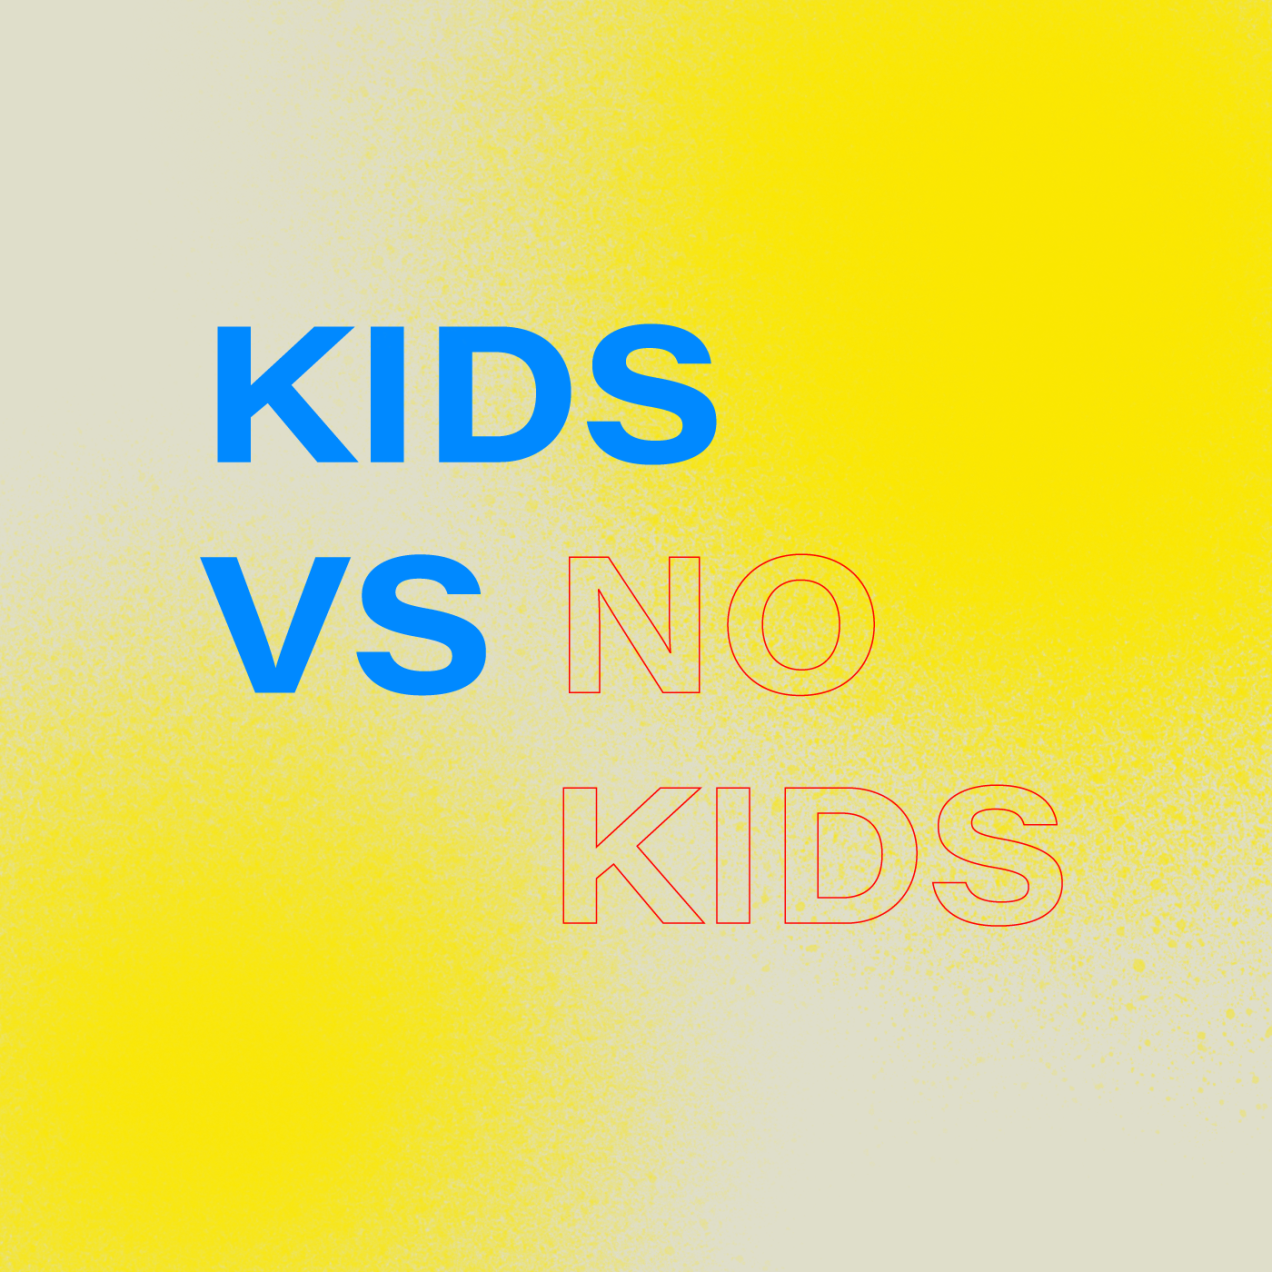 kids vs no kids